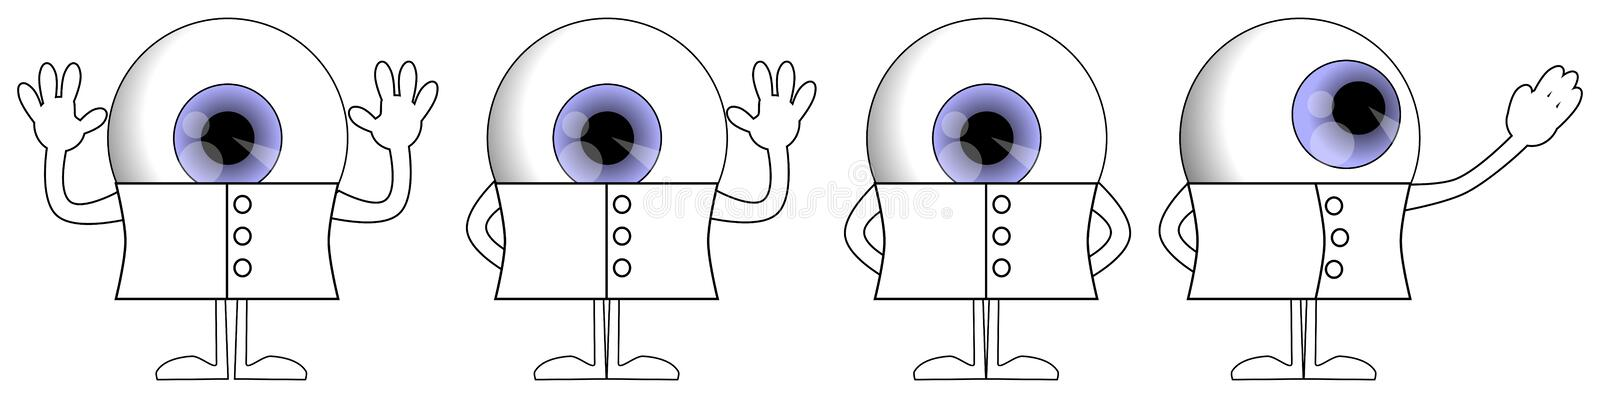 Eye cartoon in different poses, character, funny colored illustration, isolated stock illustration